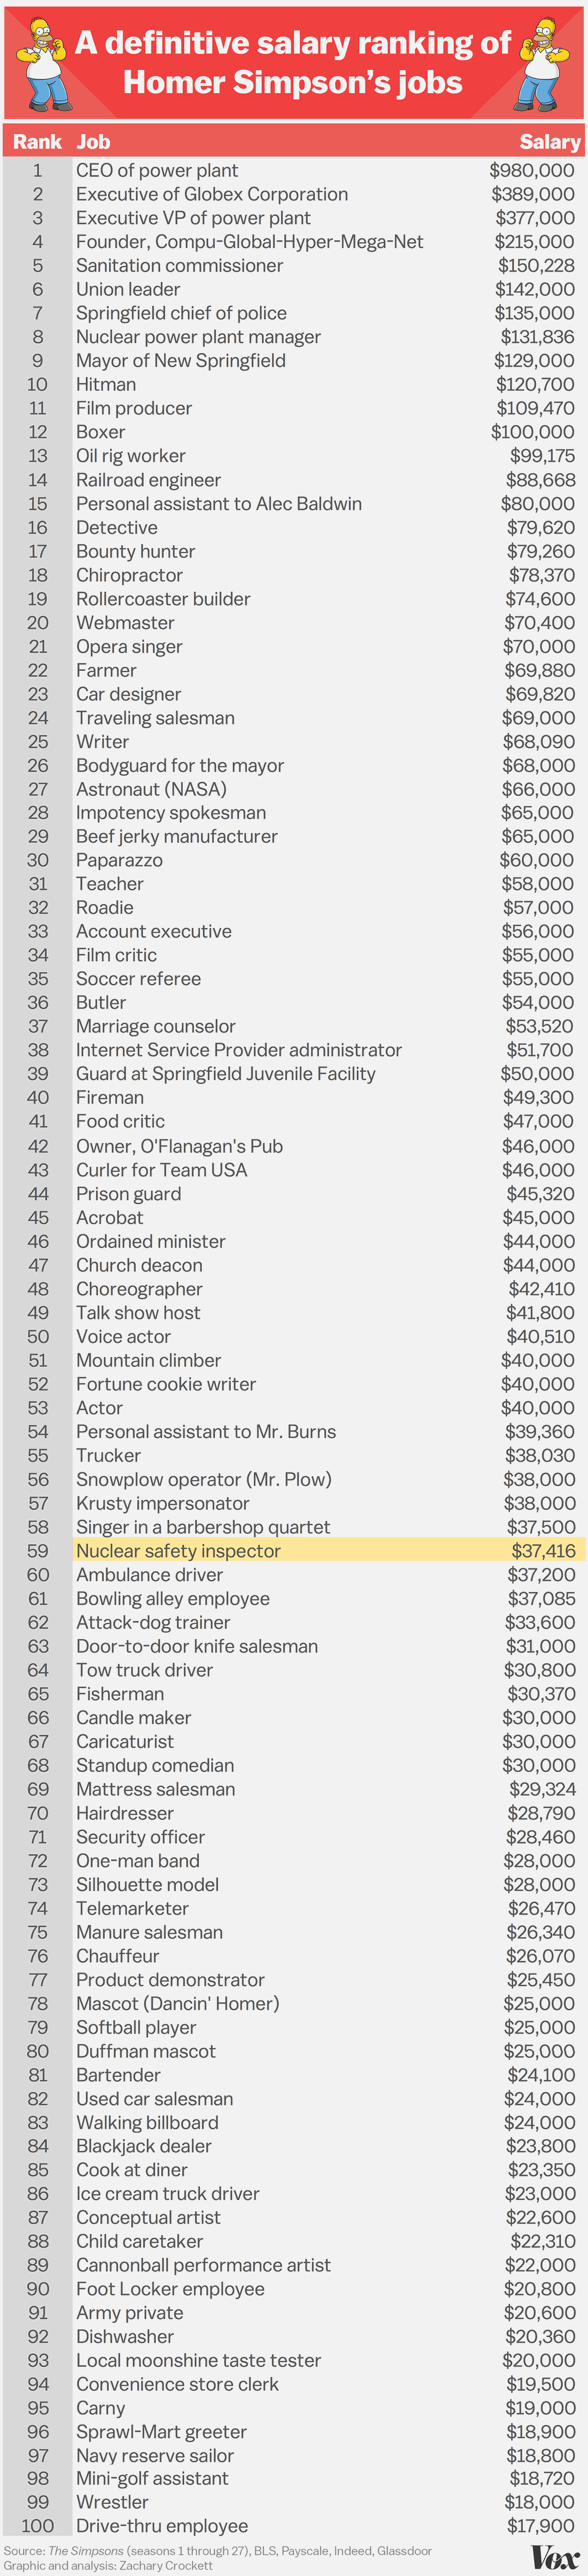 homers overall median salary is 40510 slightly higher than his safety inspector gig but still very much middle class - Golf Assistant Jobs